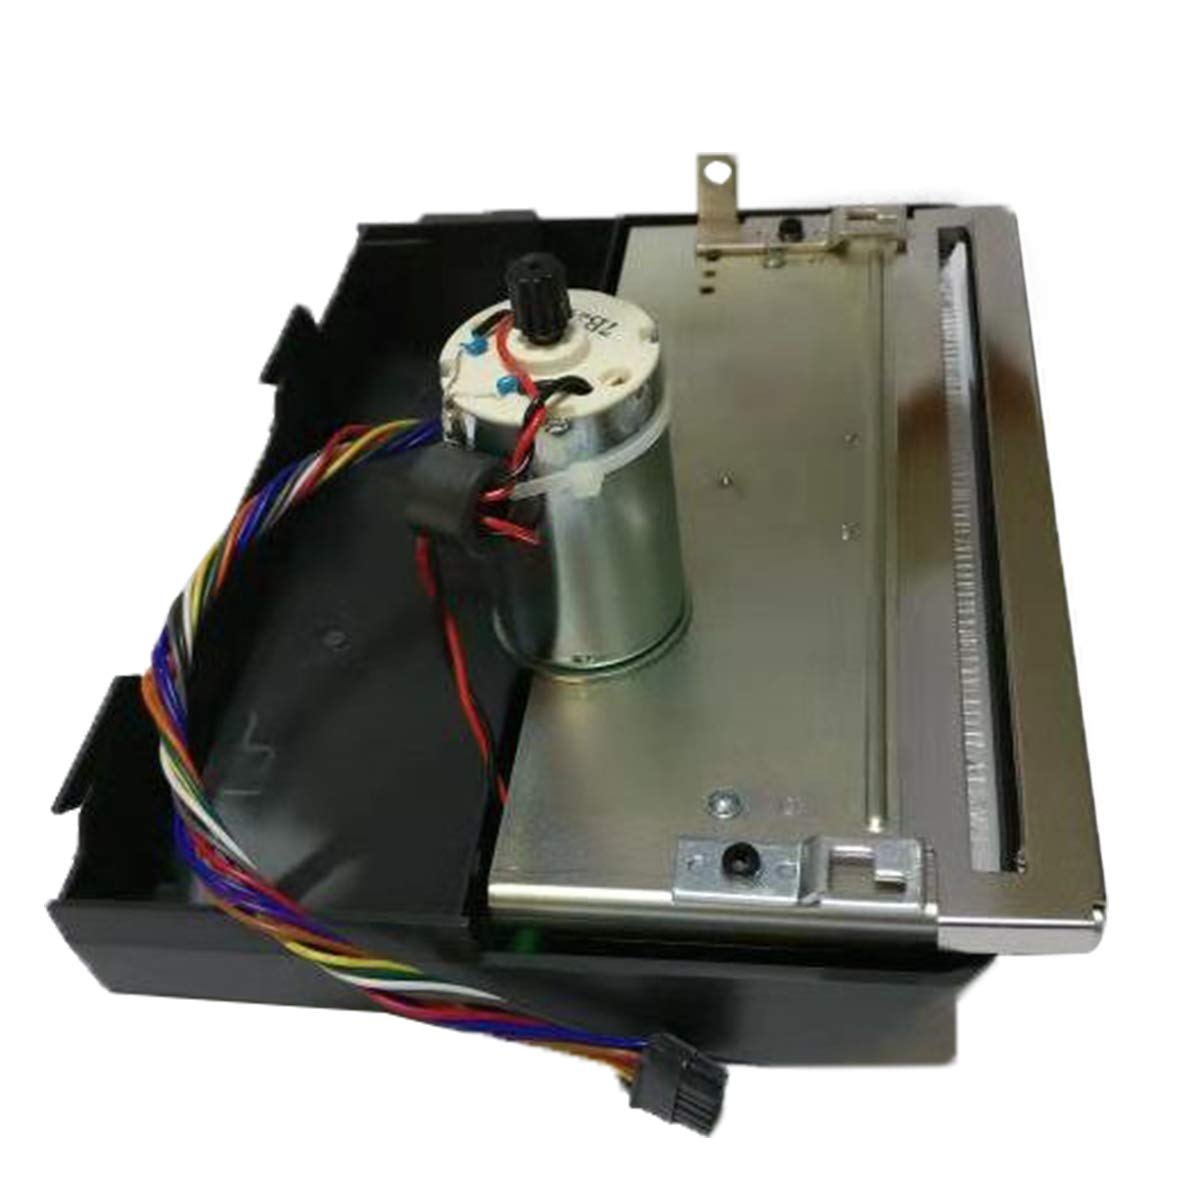 P1058930-090 Kit Cutter for Zebra ZT420 Barcode Label Printer by PARTSHE (Image #1)